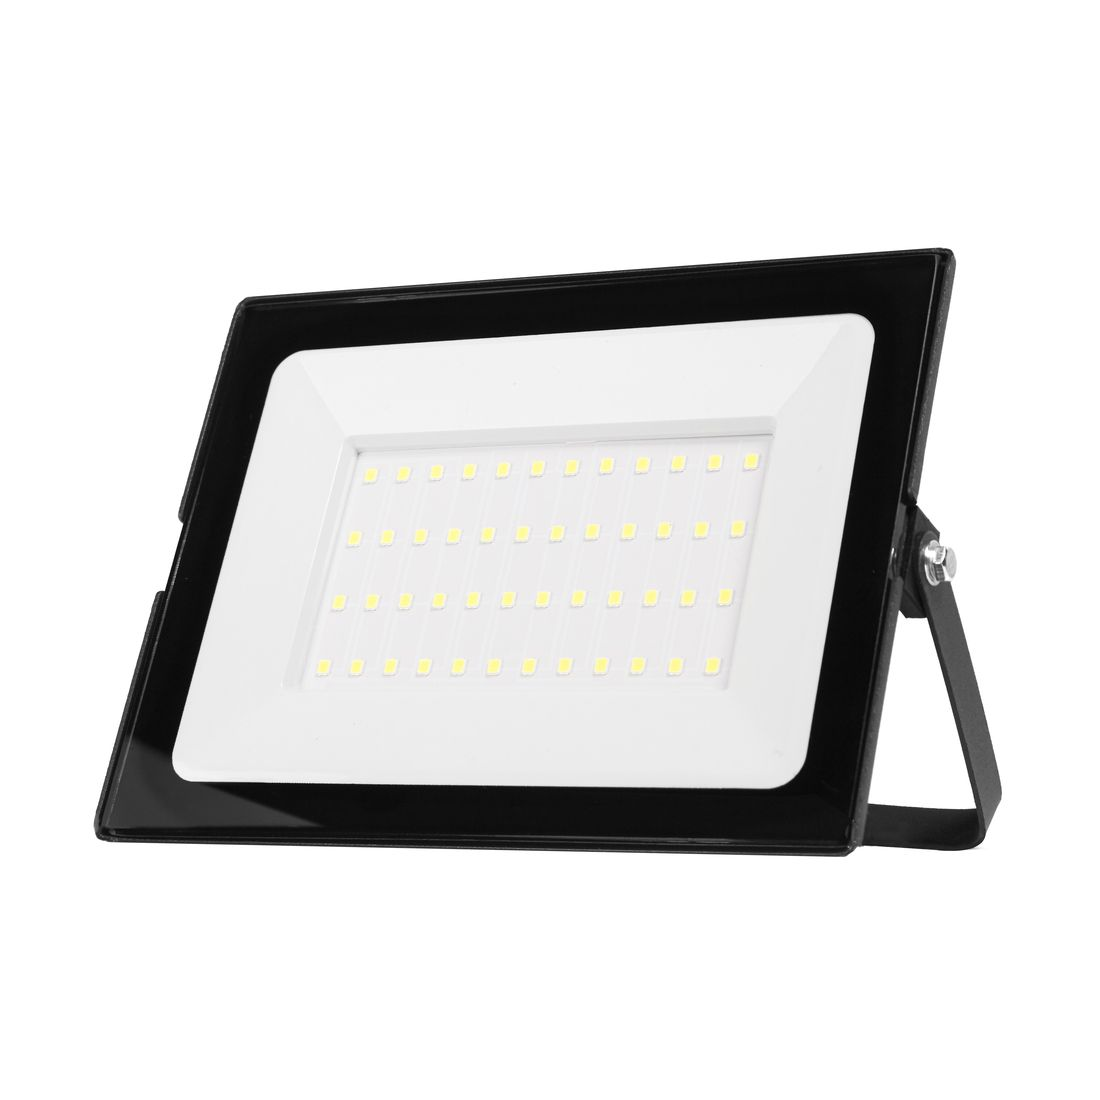 Прожектор LED SMD Ultraflash LFL-5001 C02 (50Вт, 6500К)